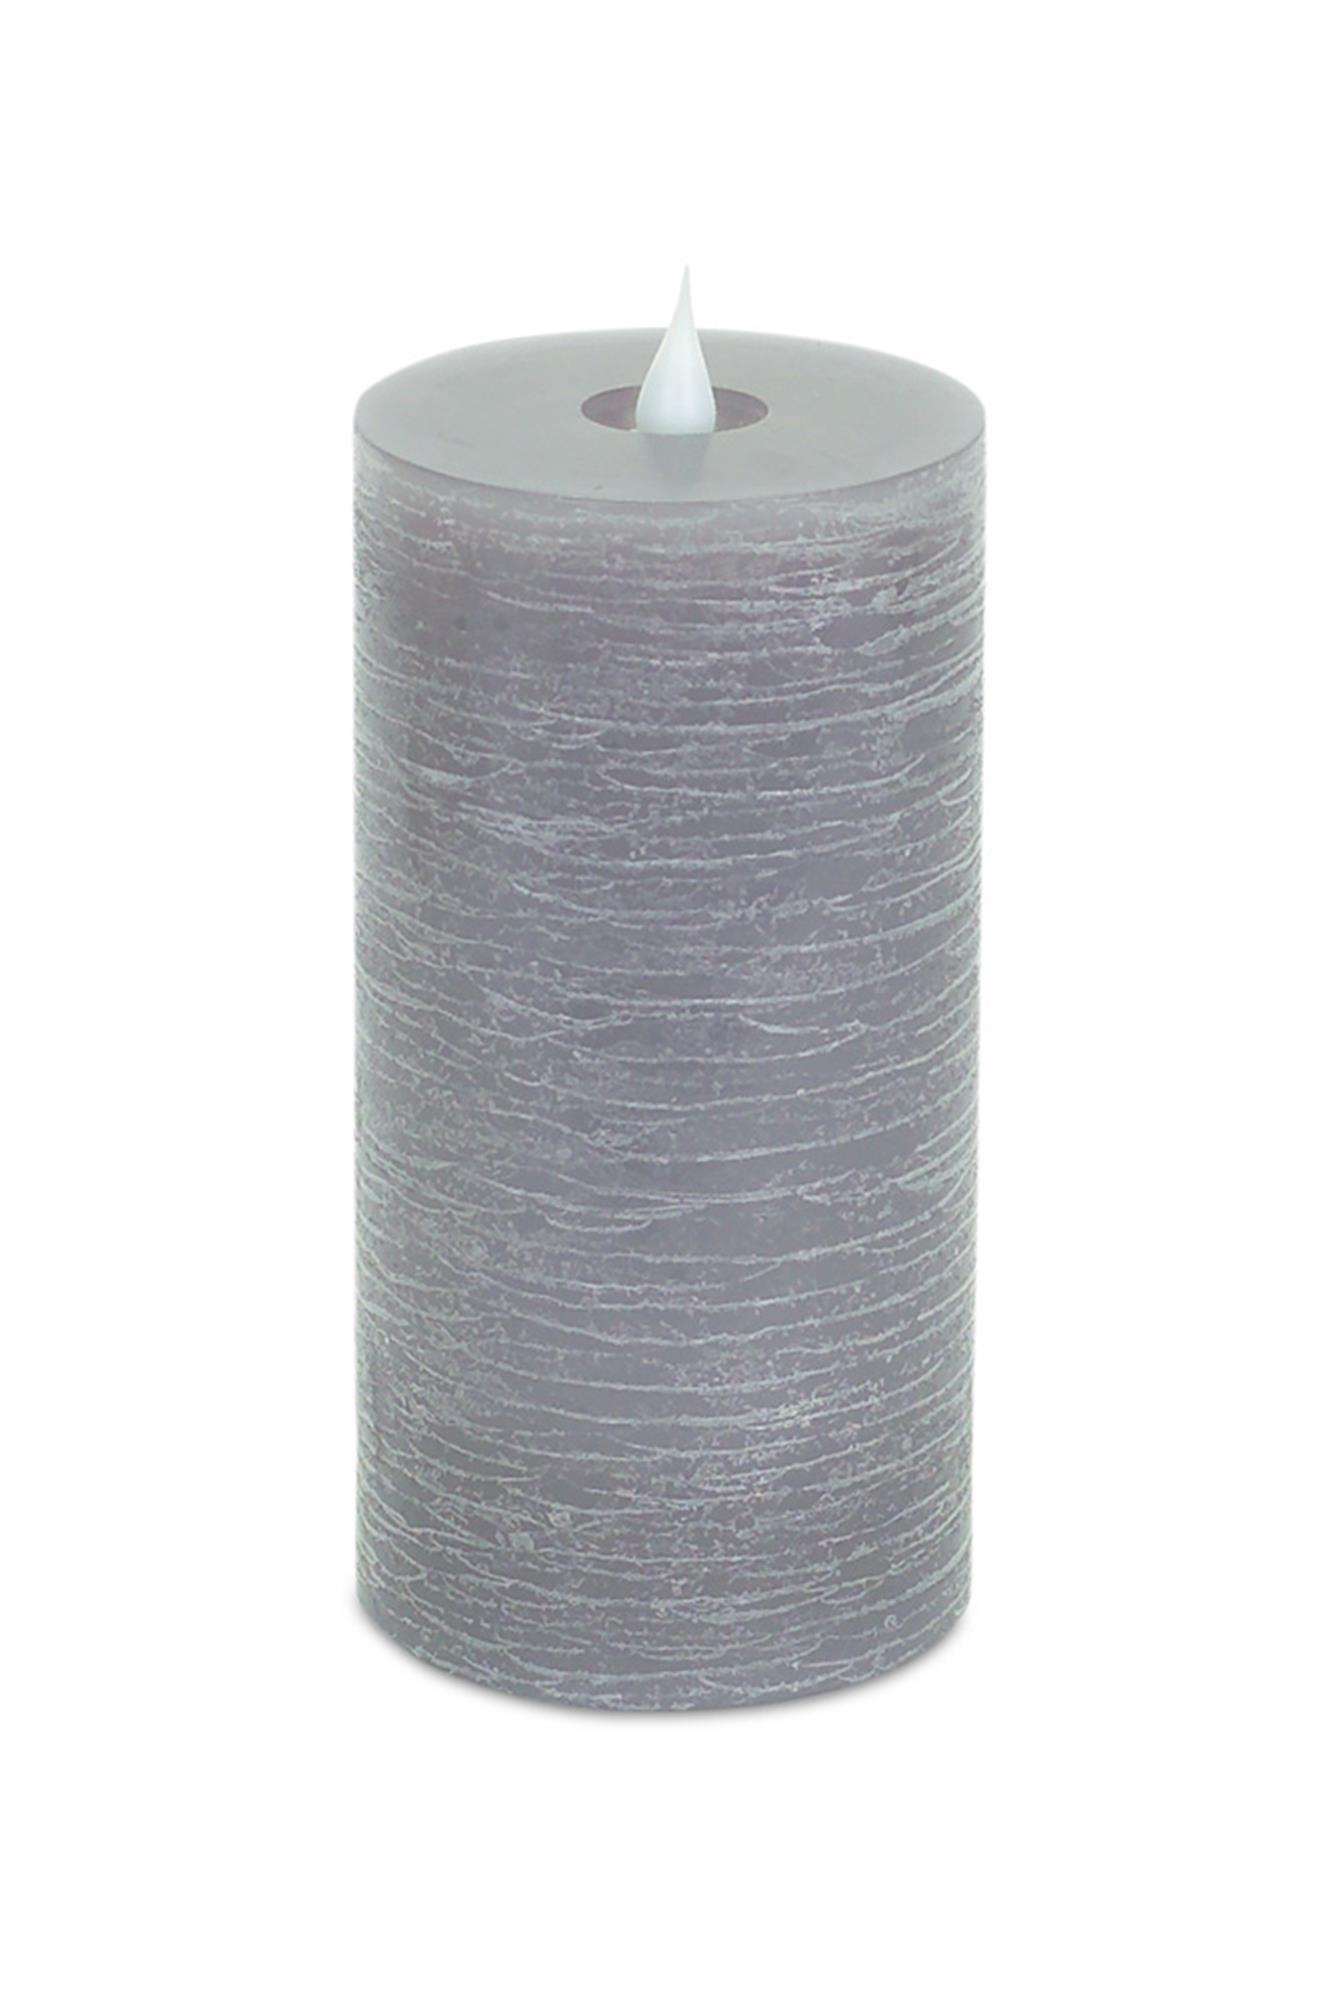 Simplux 3.5' x 7' Pillar Candle - Grey